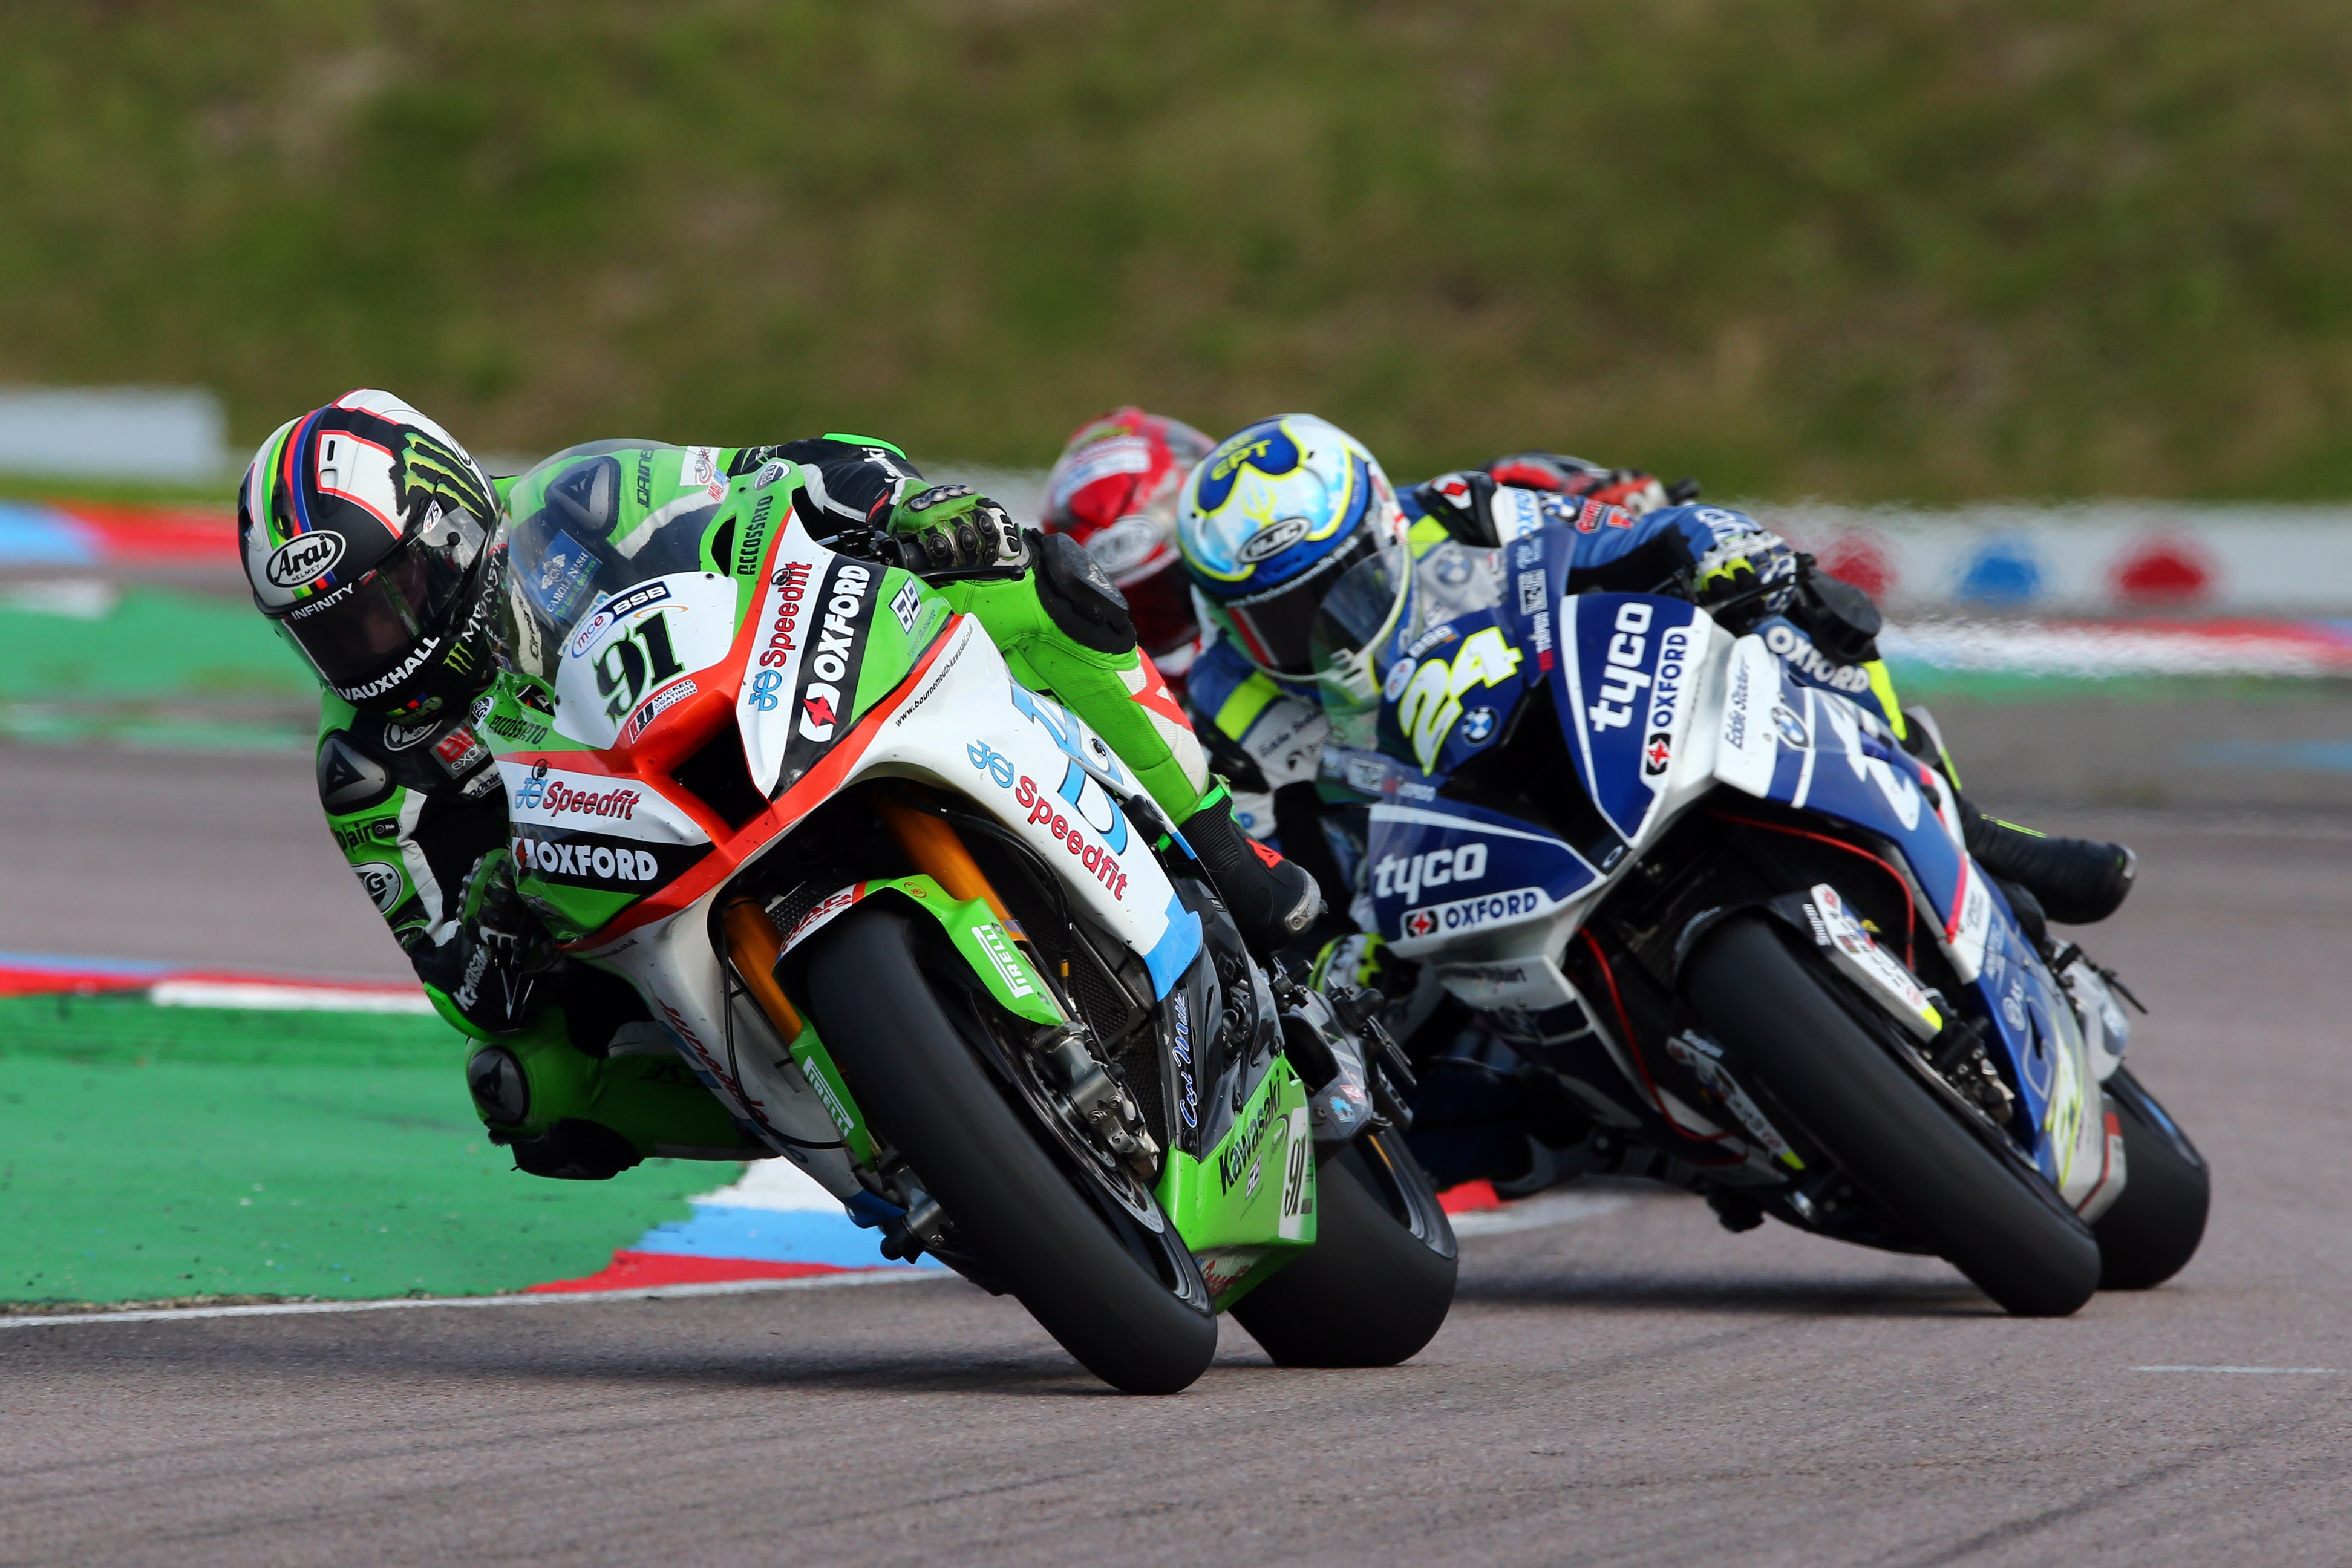 2017 British Superbike Championship, BSB R07, Thruxton, Hampshire, UK. 6th August 2017. Leon Haslam, Smalley, JG Speedfit Kawasaki takes 3rd in race 2